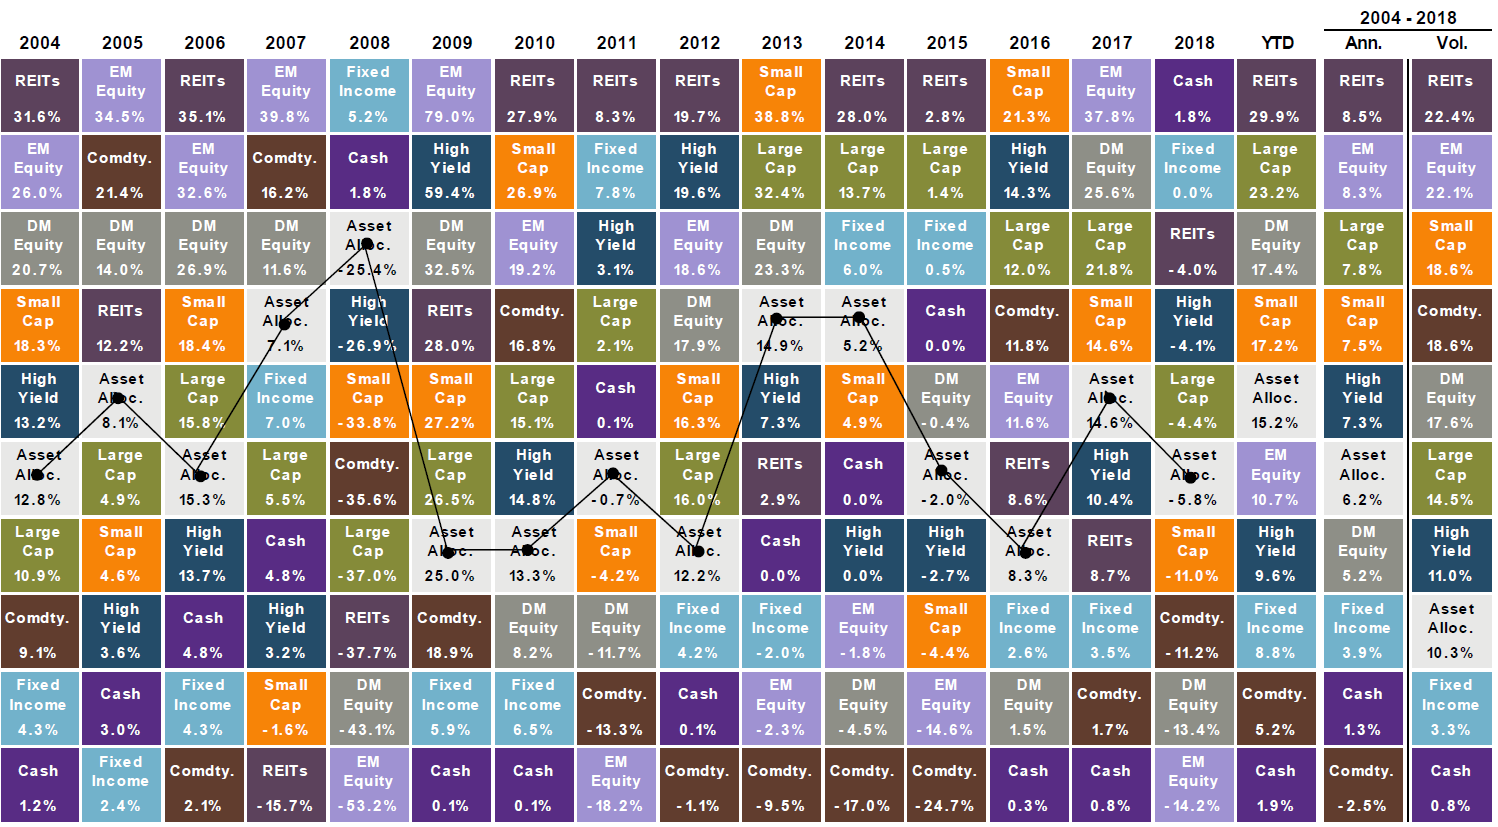 Diversification quilt chart